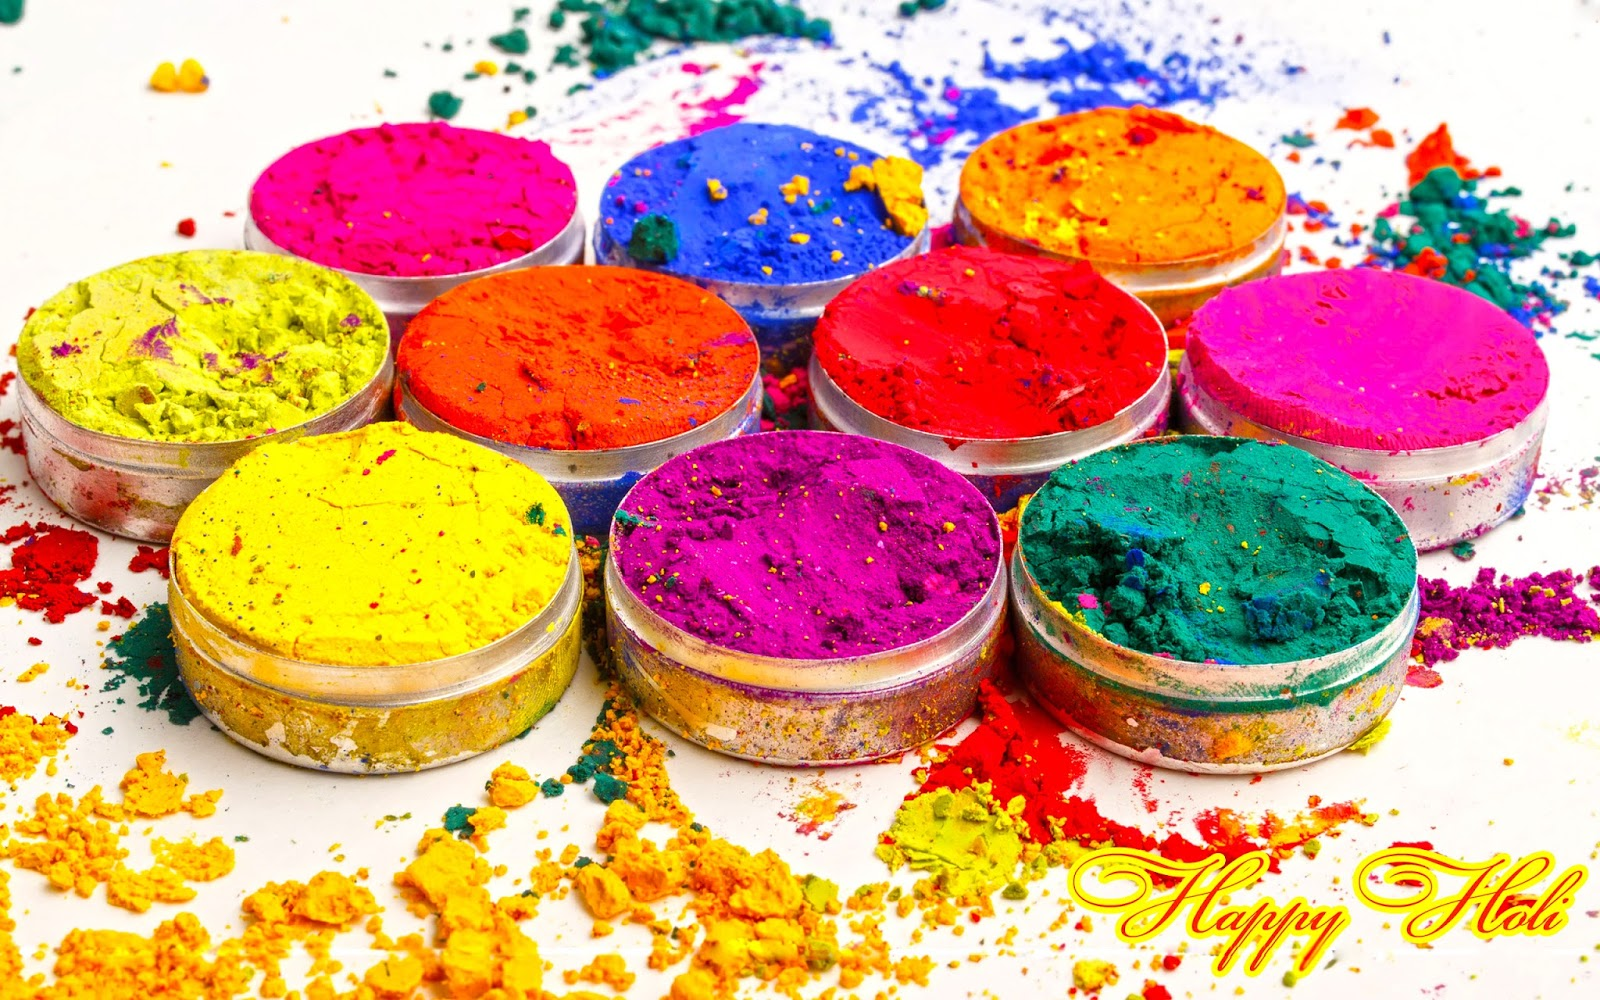 Happy Holi HD Wallpapers Images And Pictures 2017